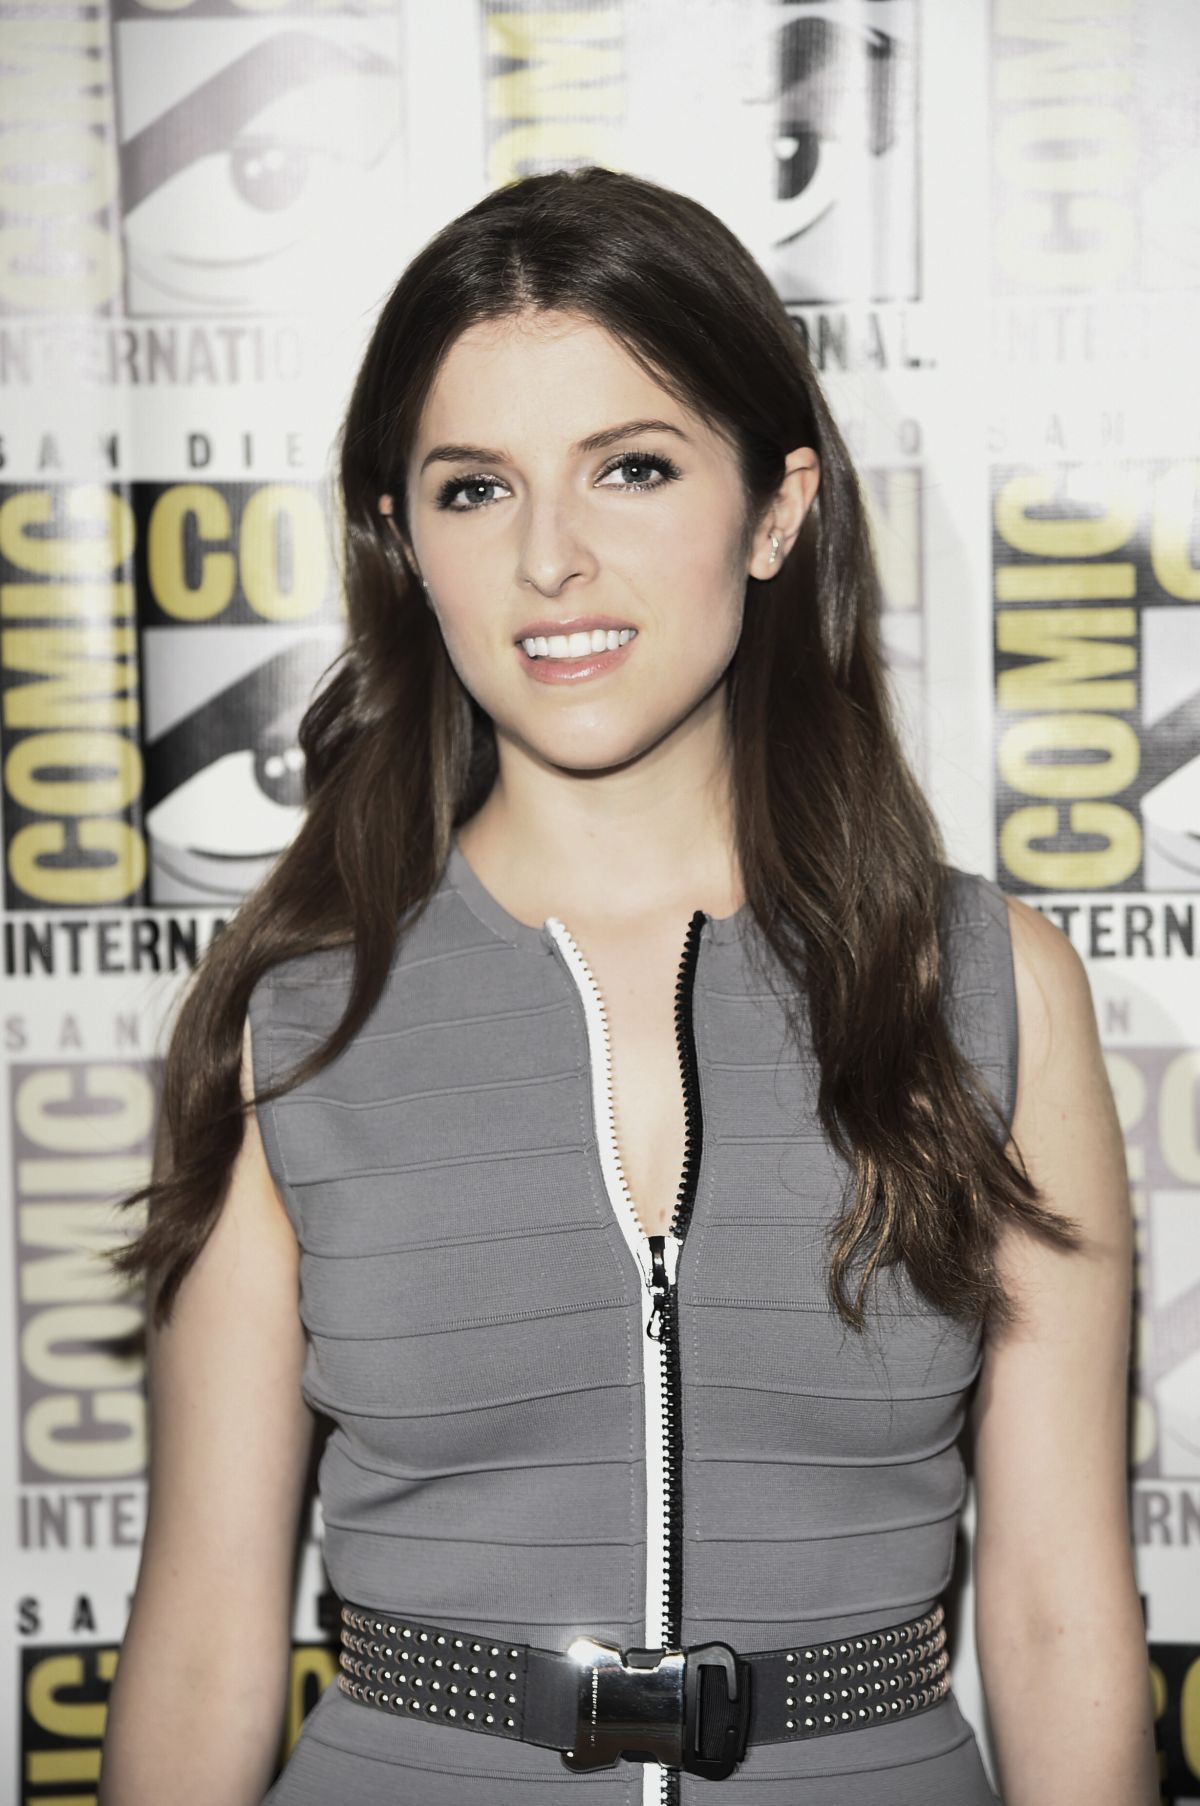 ANNA KENDRICK at Trolls Press Line at Comic-con in San Diego 07/21 ...